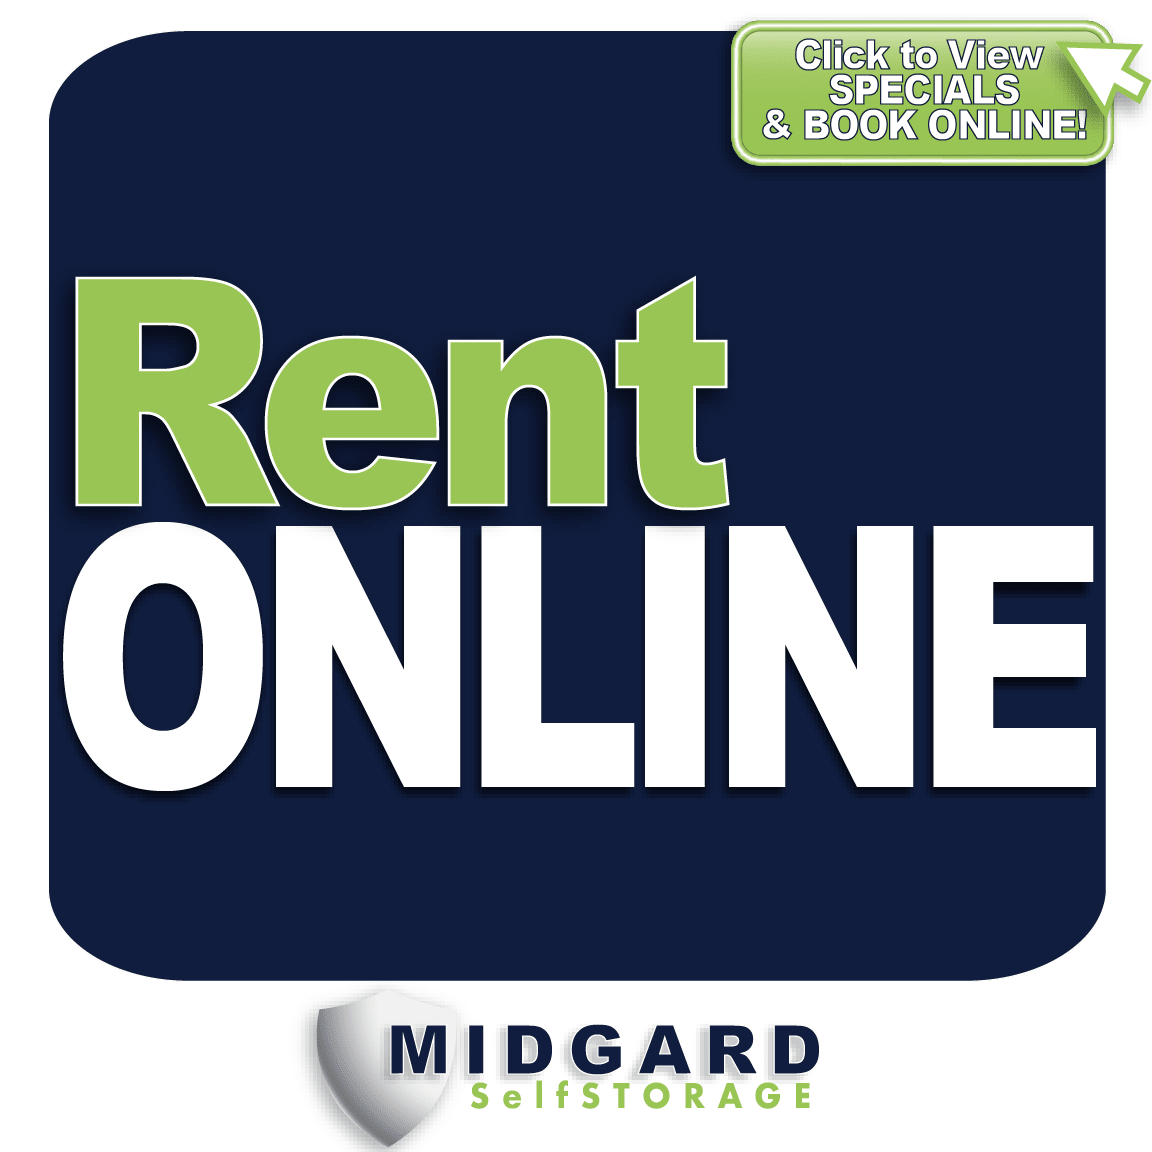 Special offer at Midgard Self Storage in Florence, Alabama